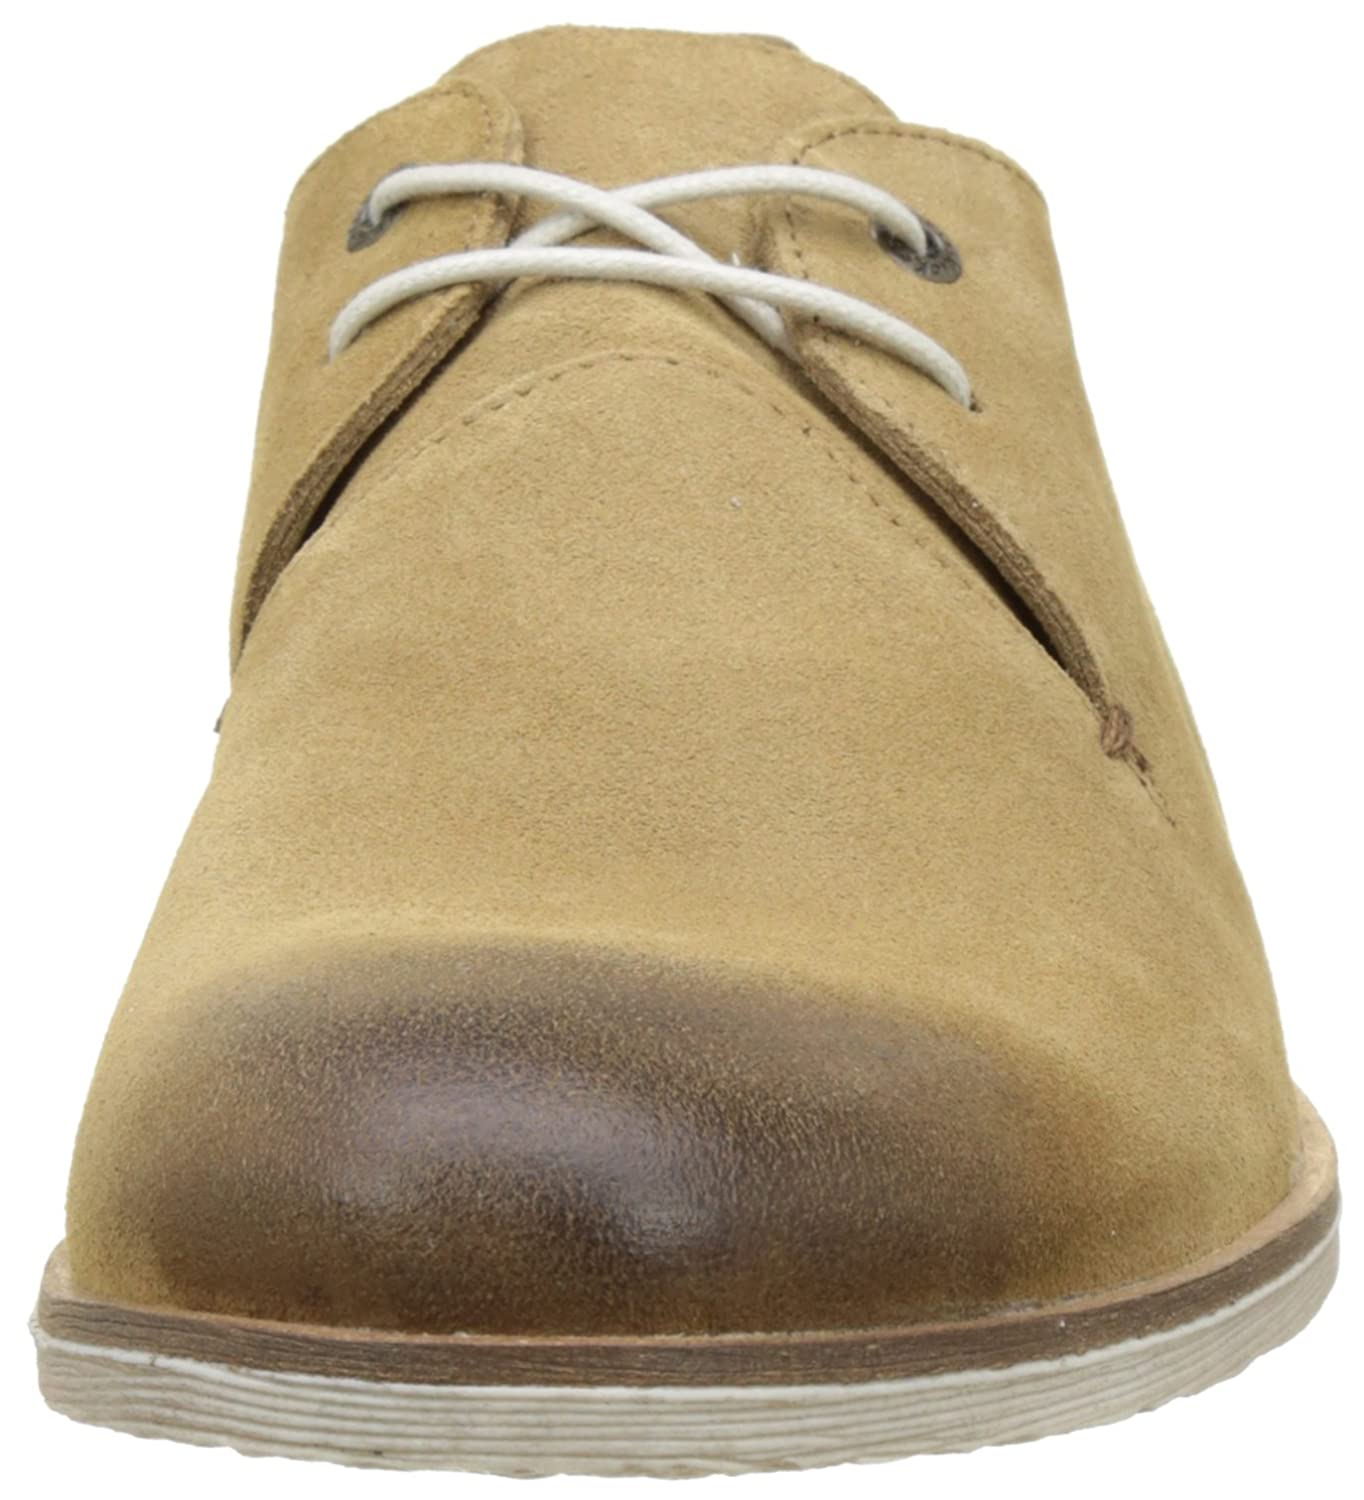 Sacs Homme Flallina Kickers Brogues Chaussures Et d4XEZqxw